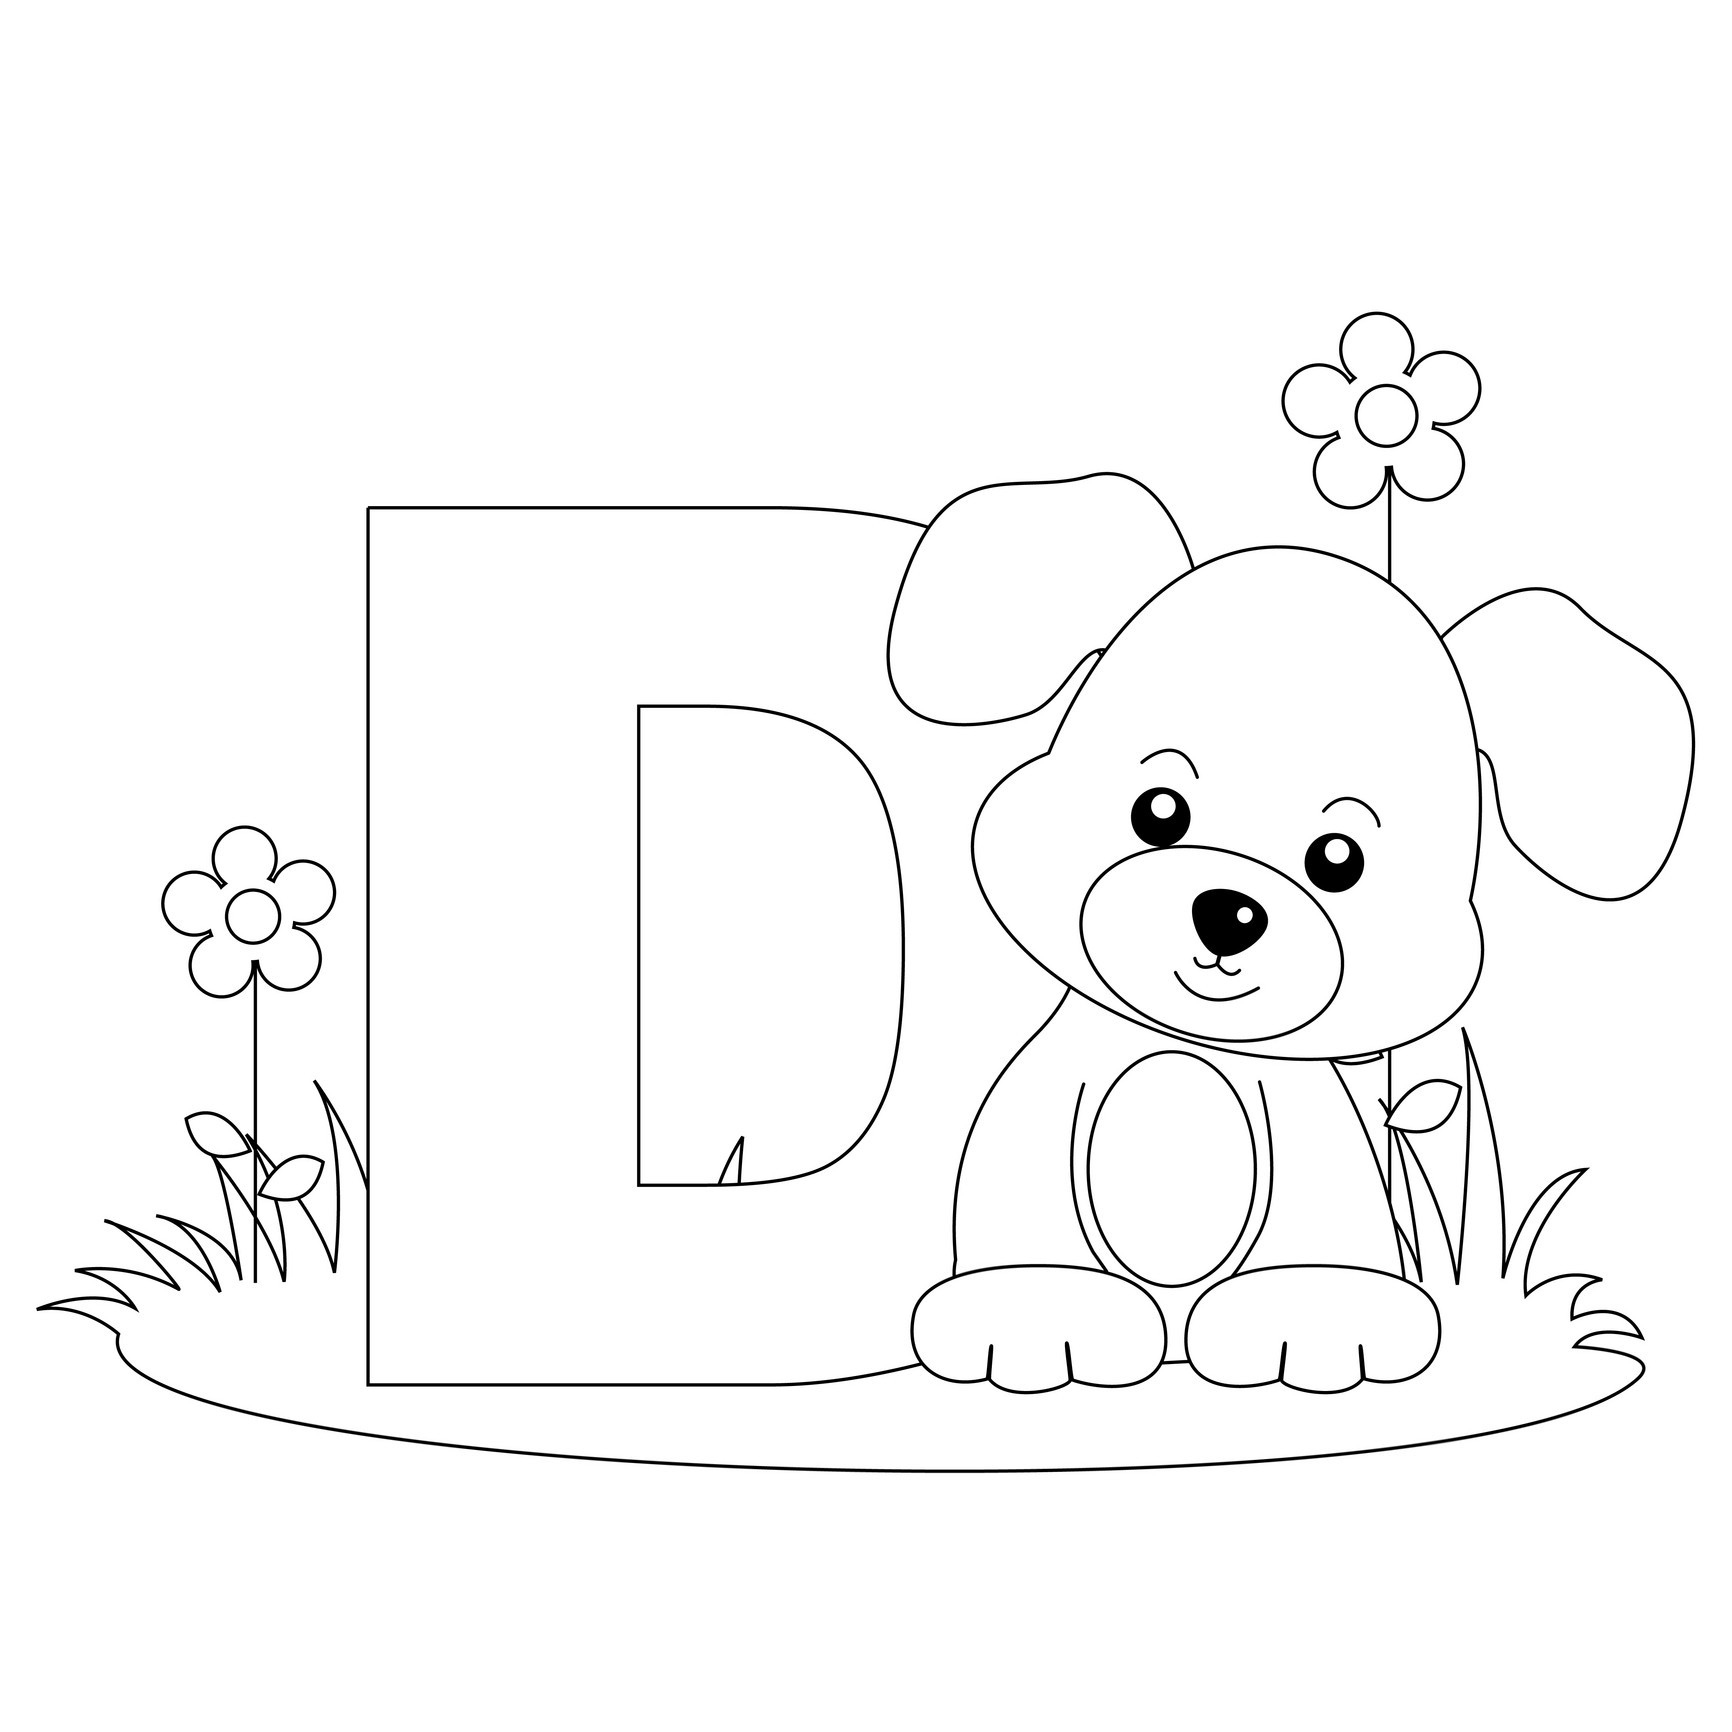 Letter d coloring page for toddlers